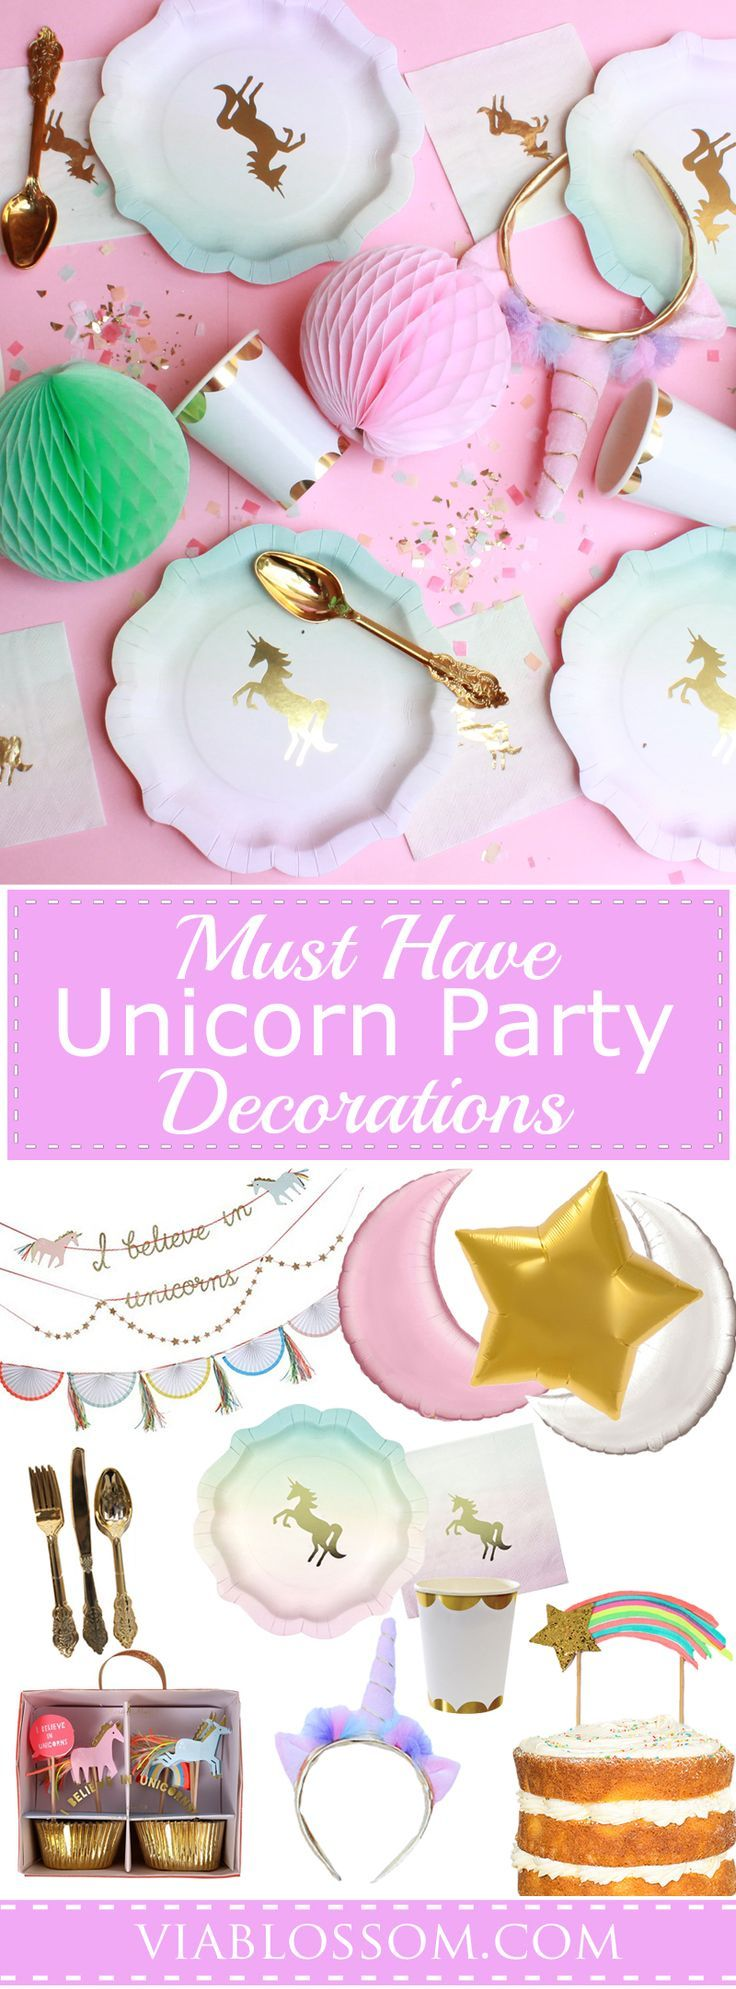 You will die over our Unicorn Party Decorations for a magical girl birthday party! All the Unicorn Party Ideas in one place for easy party planning and decorating! #unicorn party #kids party